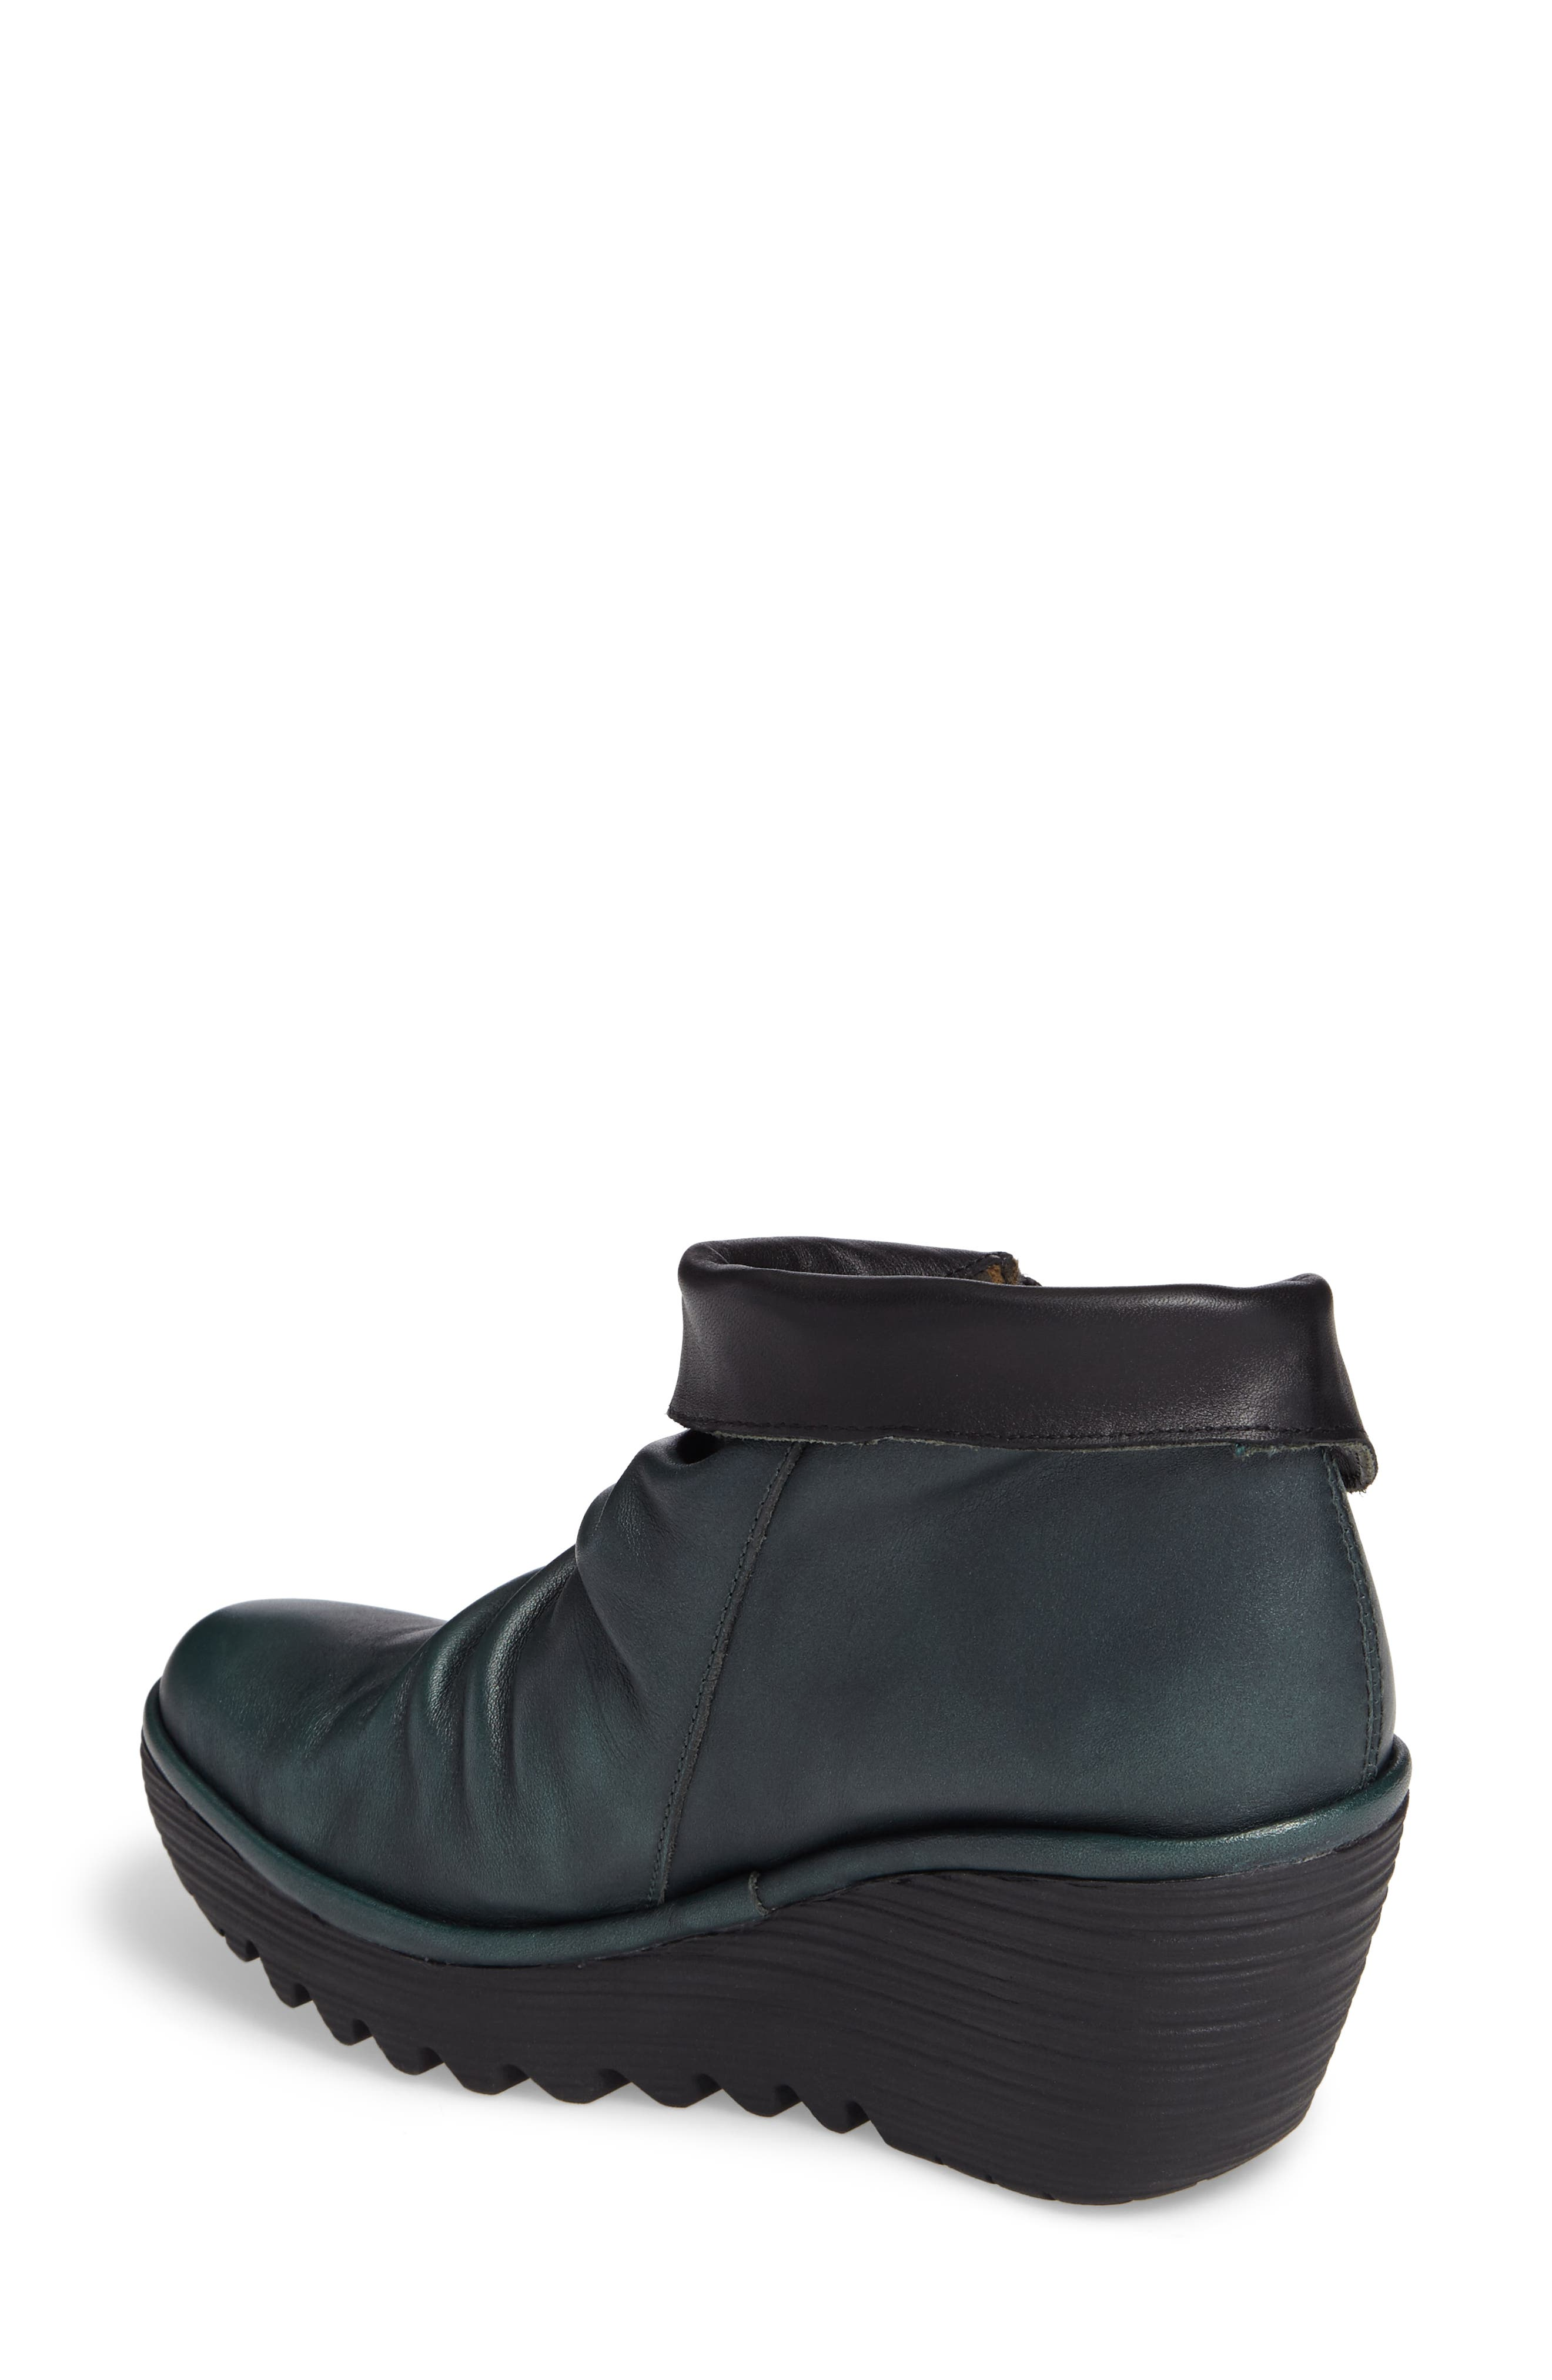 Yoxi Wedge Bootie,                             Alternate thumbnail 2, color,                             Seaweed Leather